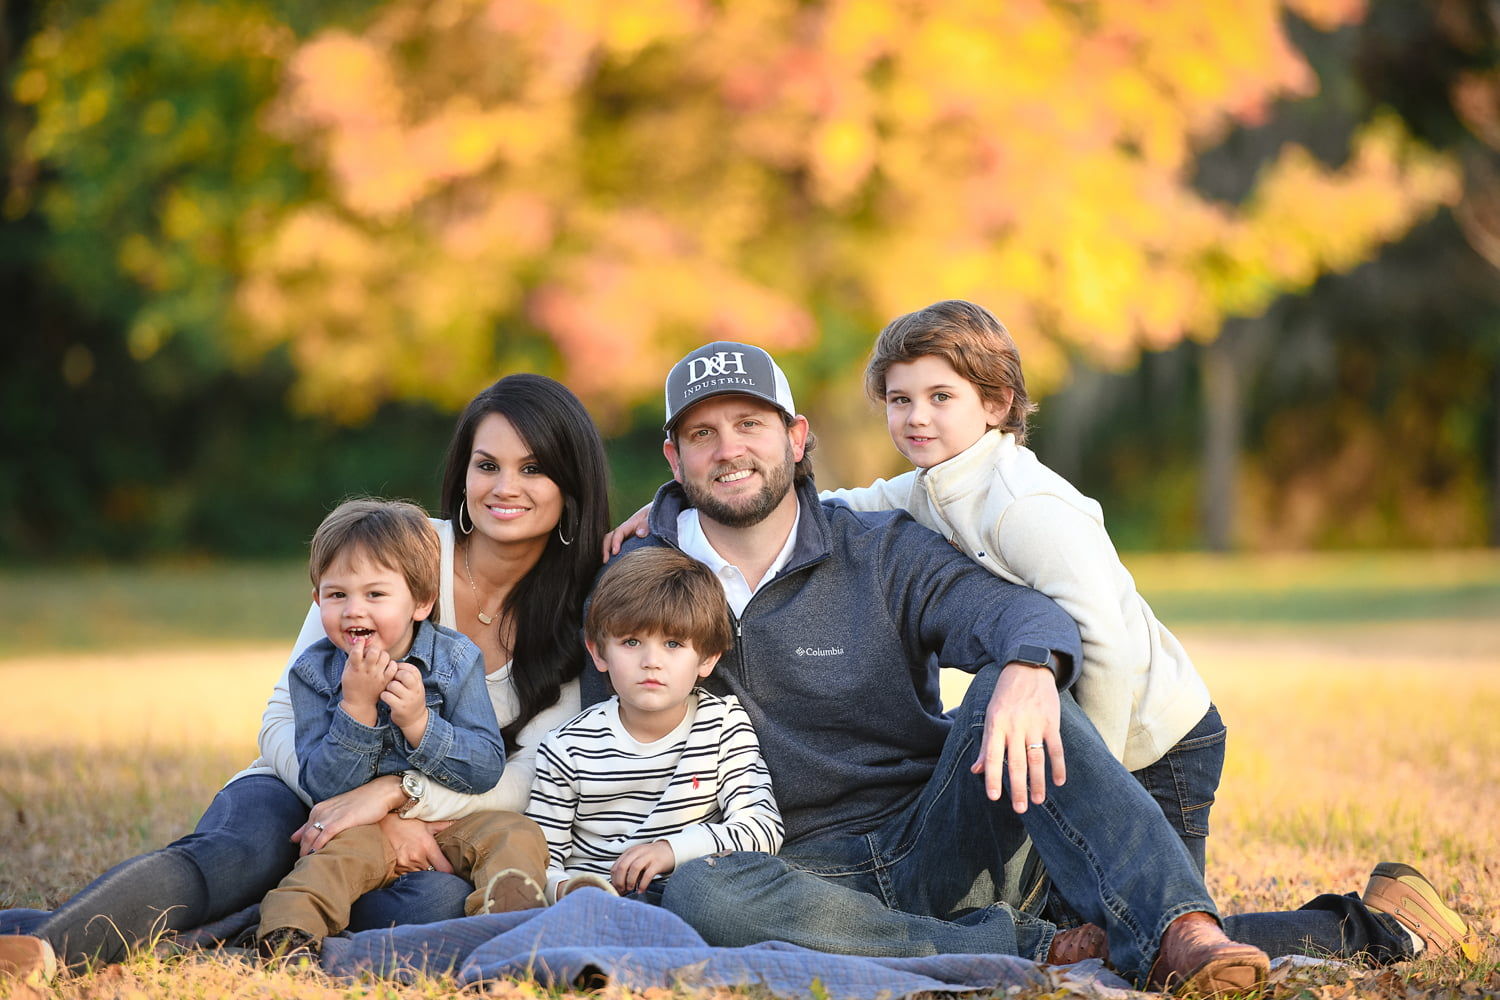 Family portrait photo taken by Lisa Rowland Photography in Trenton, Florida